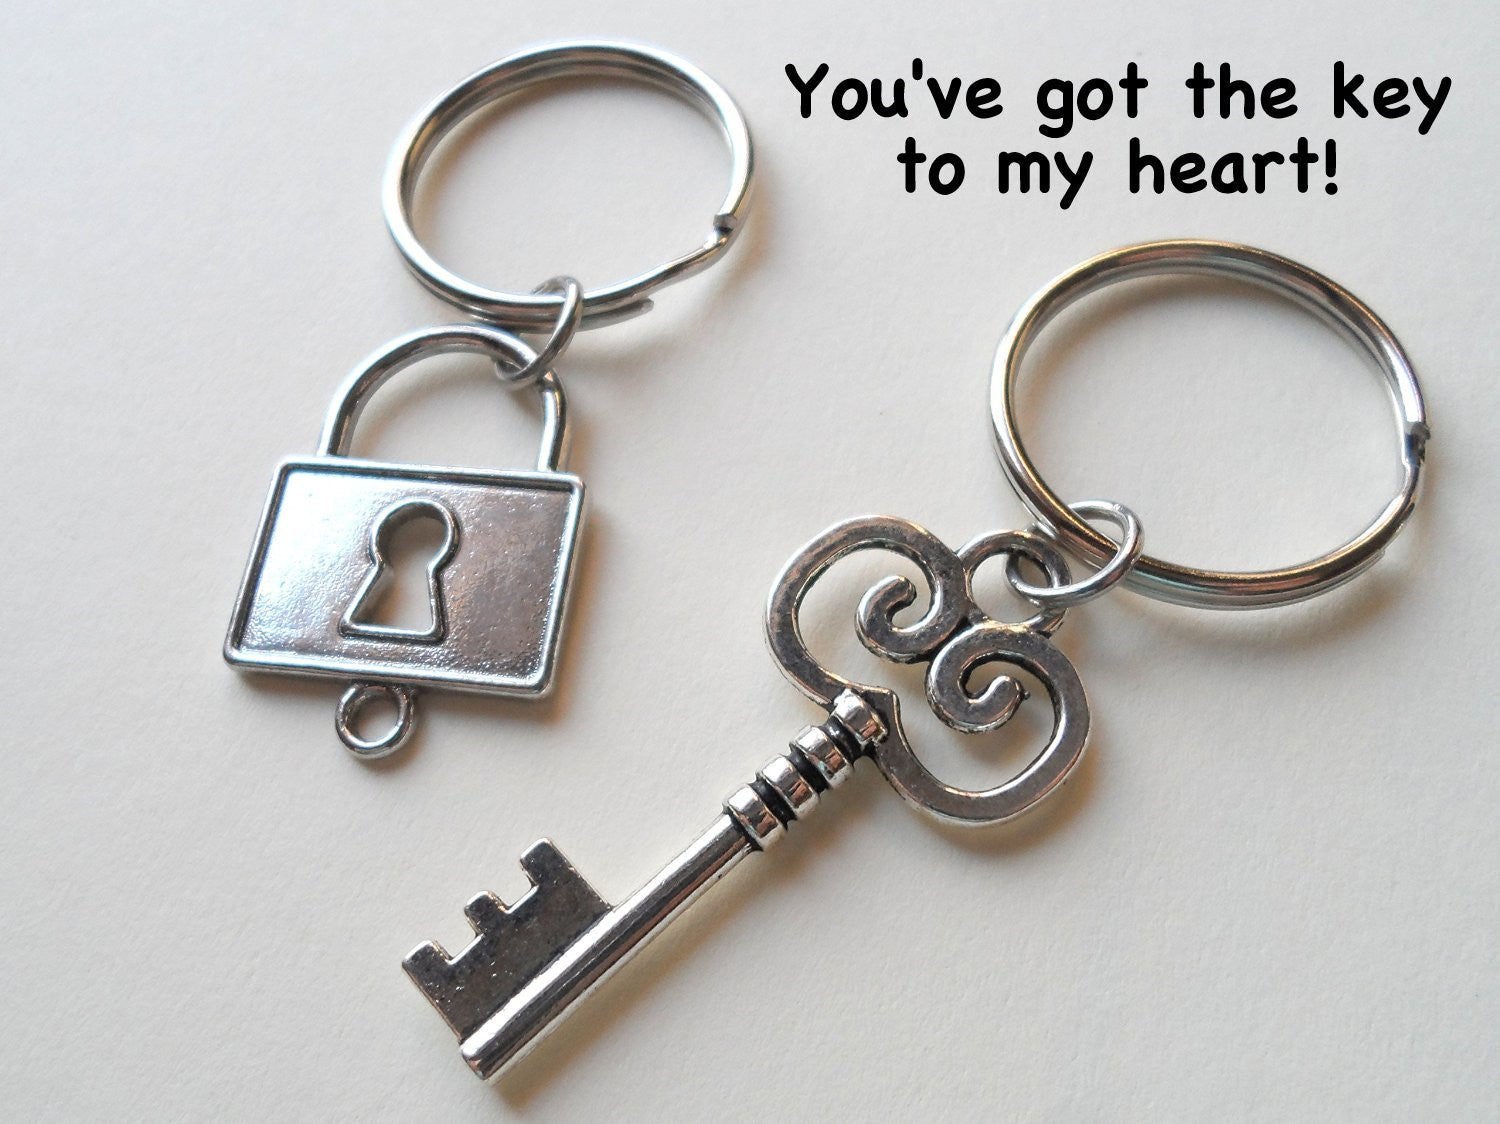 04fc128f00 Square Lock and Key Keychain Set - You've Got The Key To My Heart